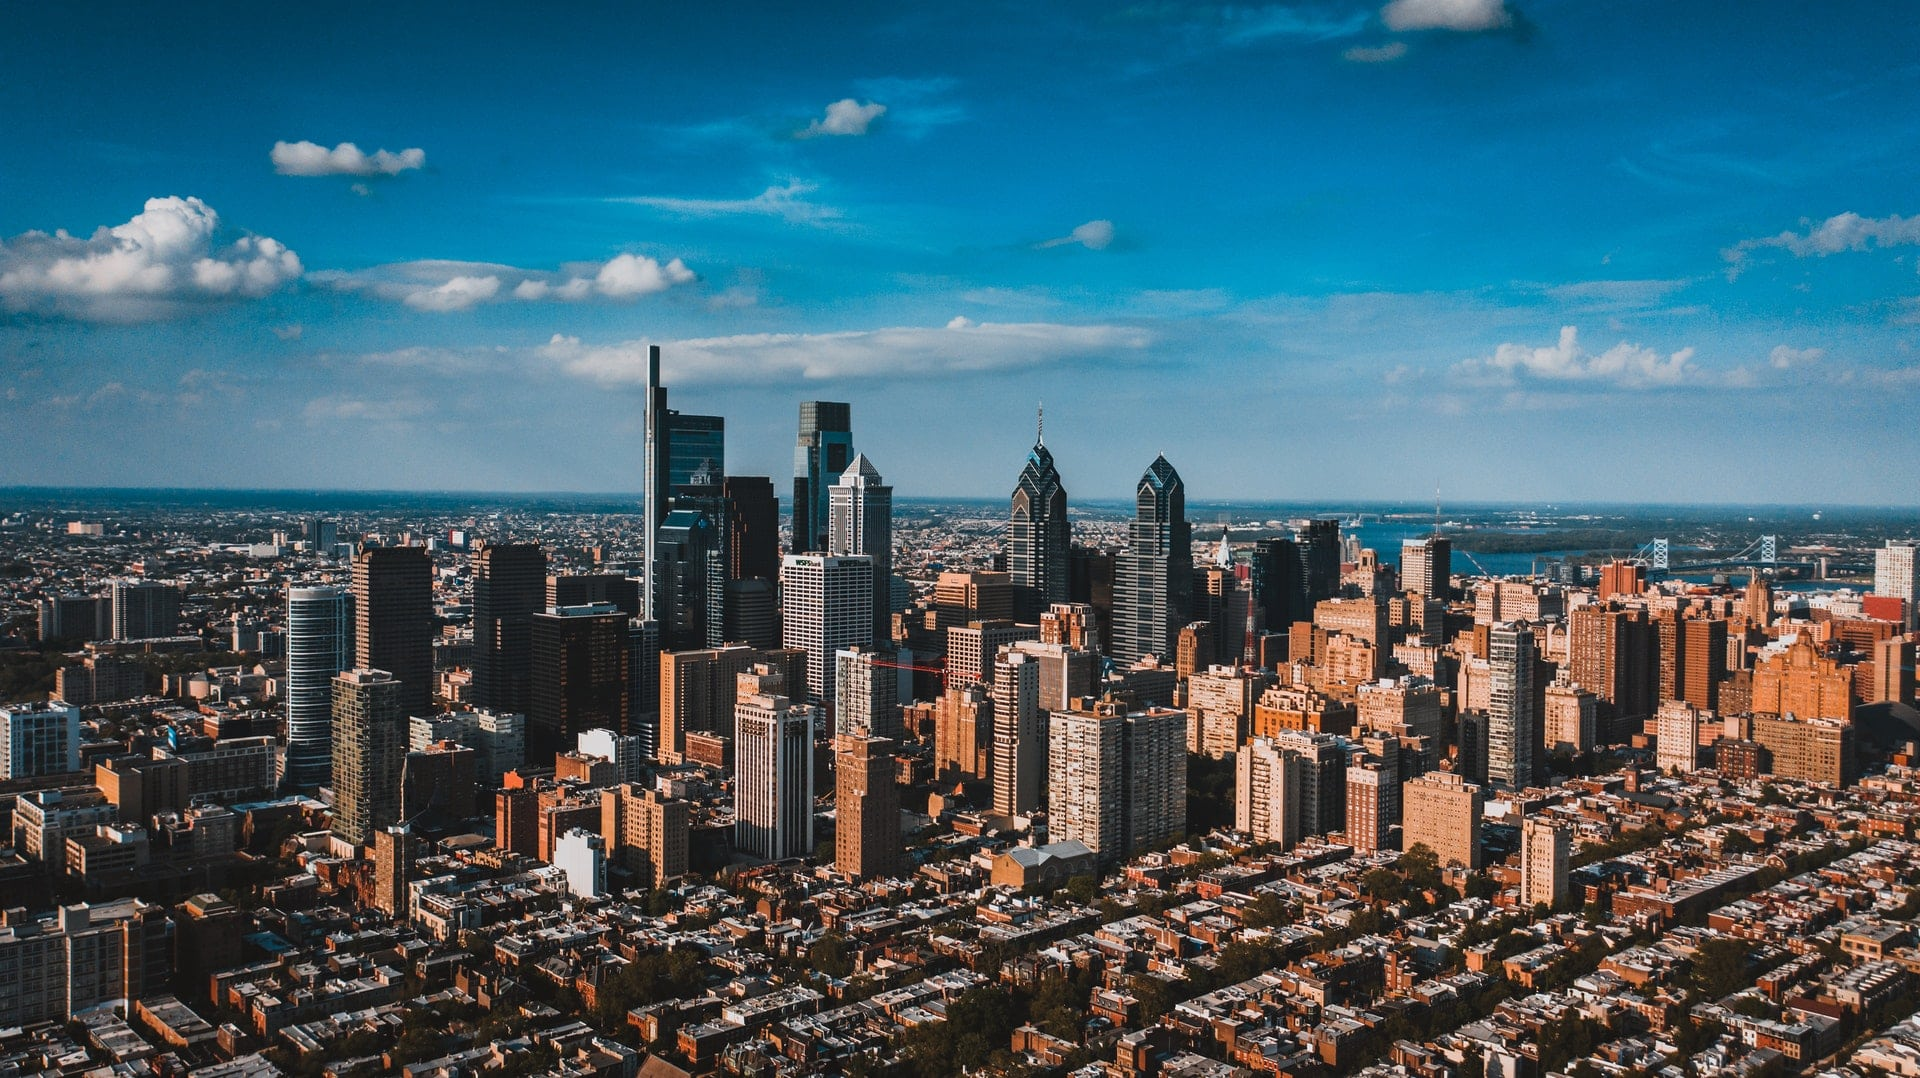 New York vs Philadelphia - where is the best place to live?